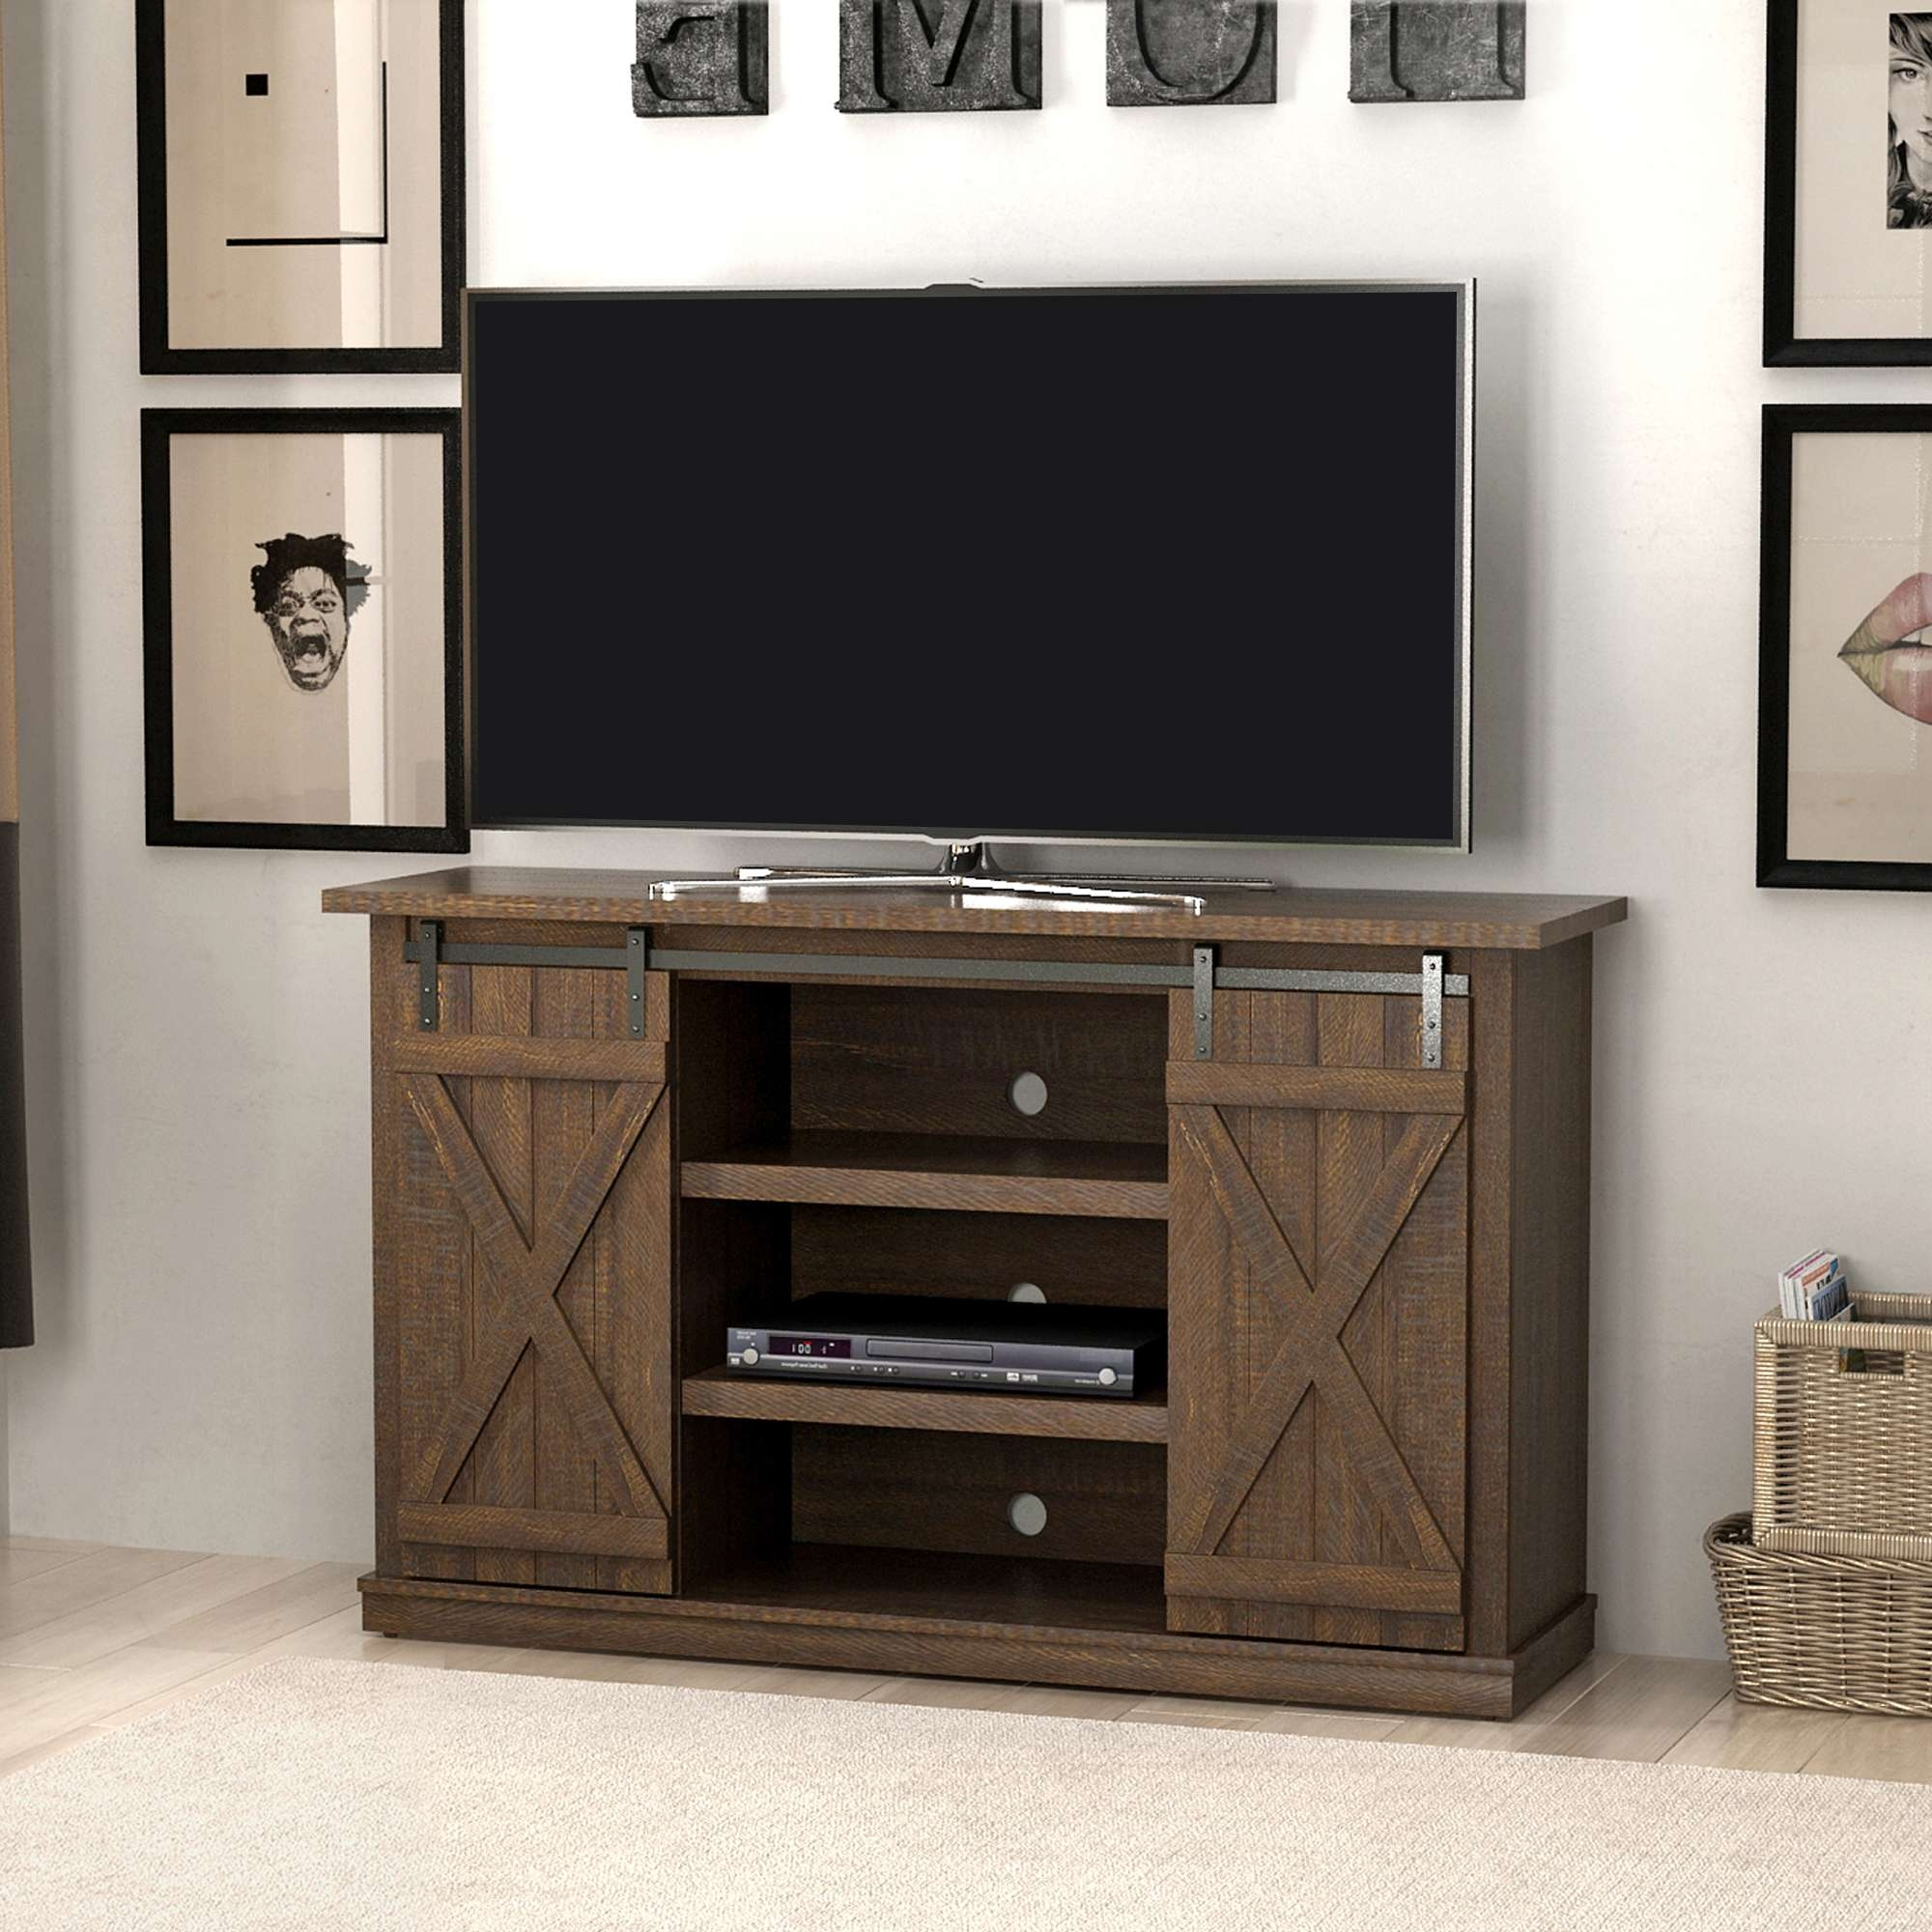 Tv Stands – Walmart In Maple Wood Tv Stands (View 6 of 15)